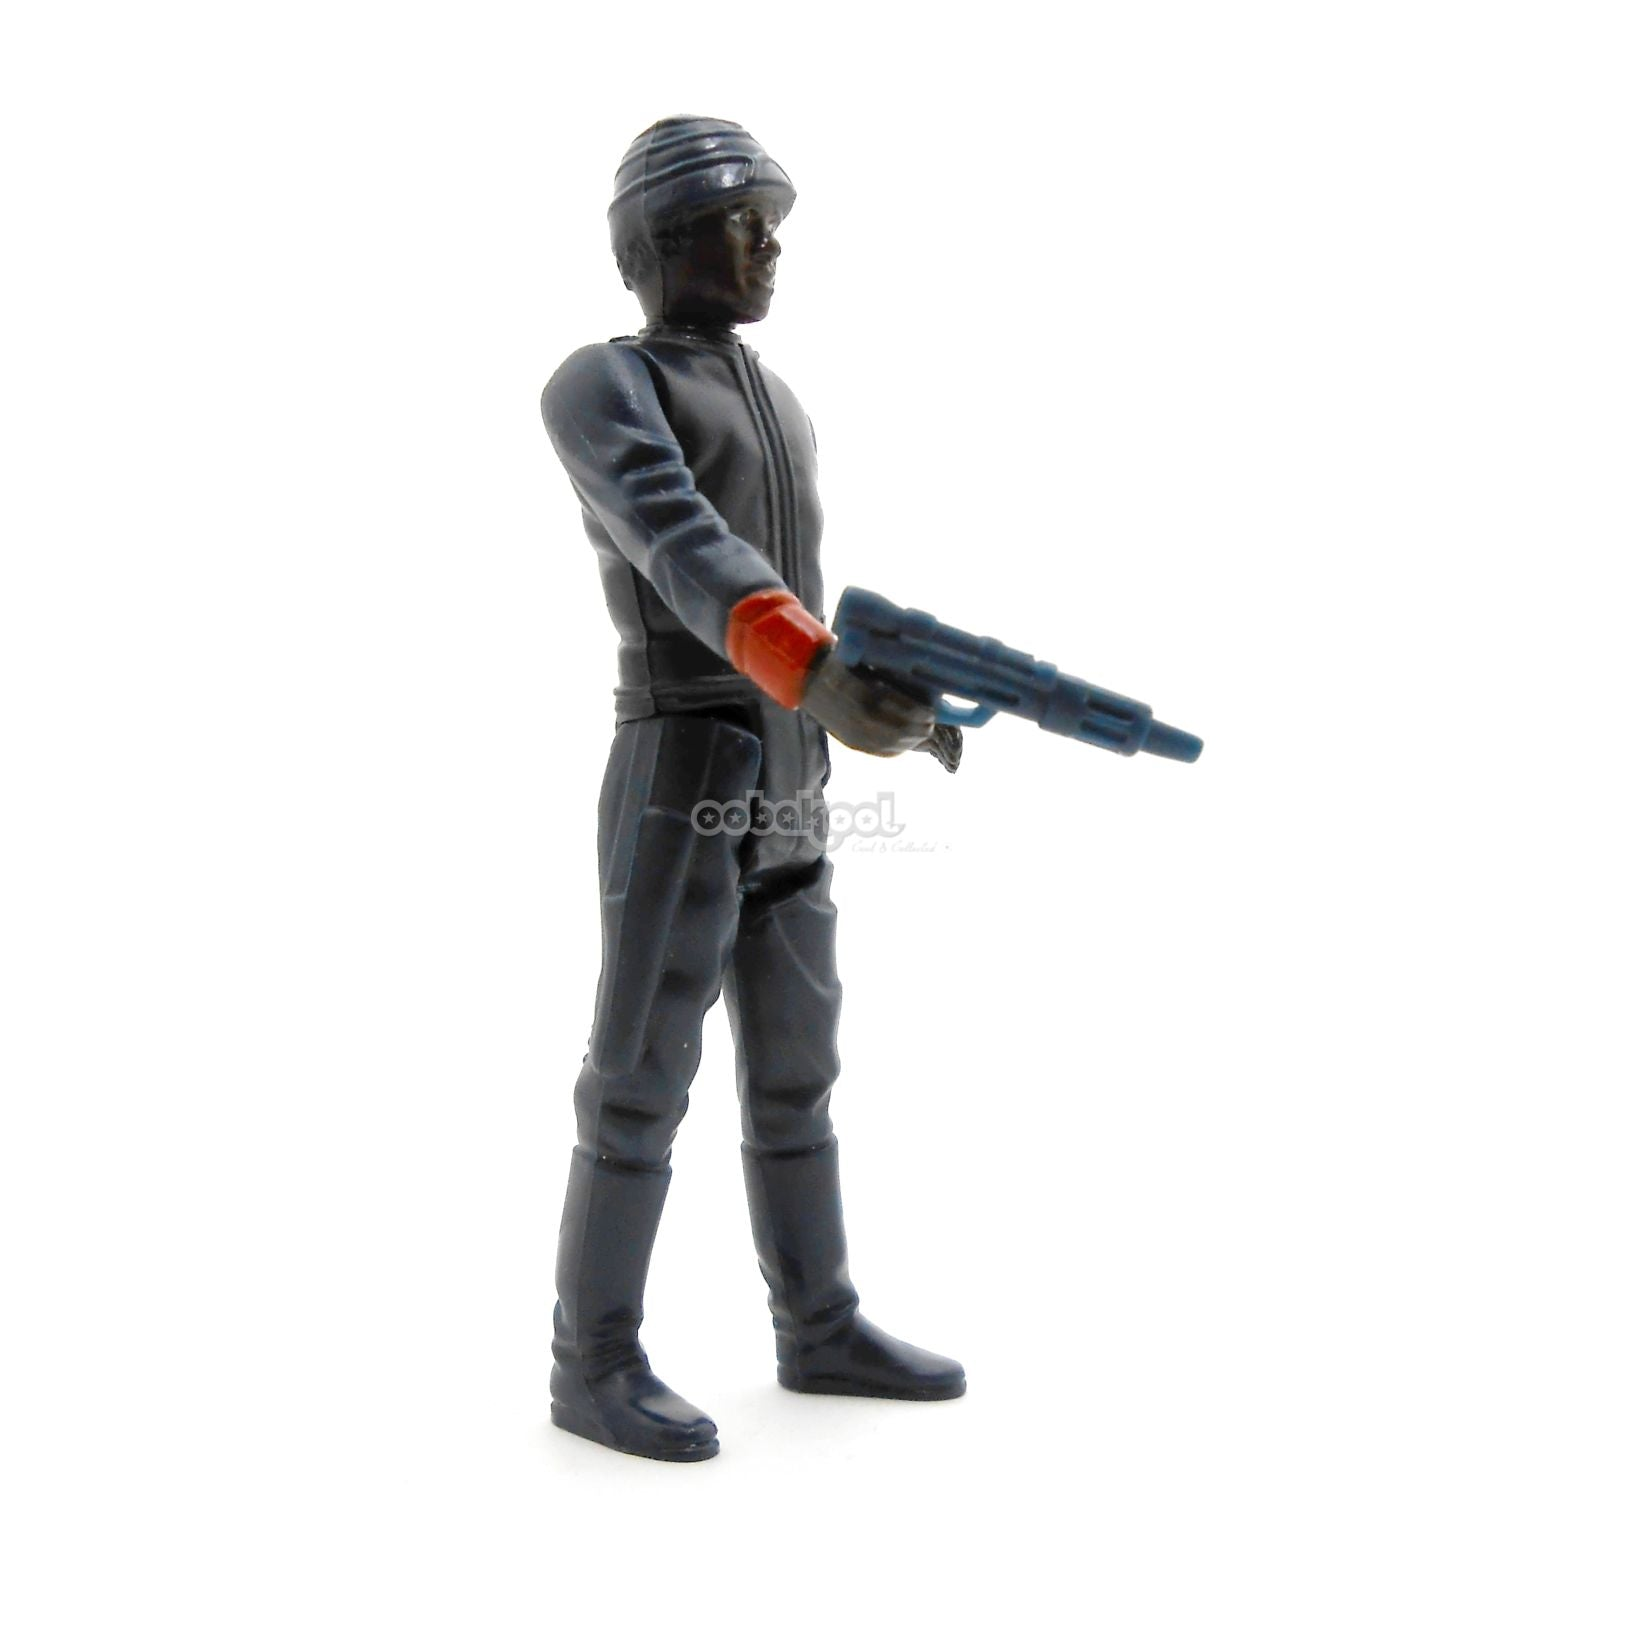 Star Wars / Bespin Security Guard Vintage Collection 1981 Kenner 3.75 Inch Figure